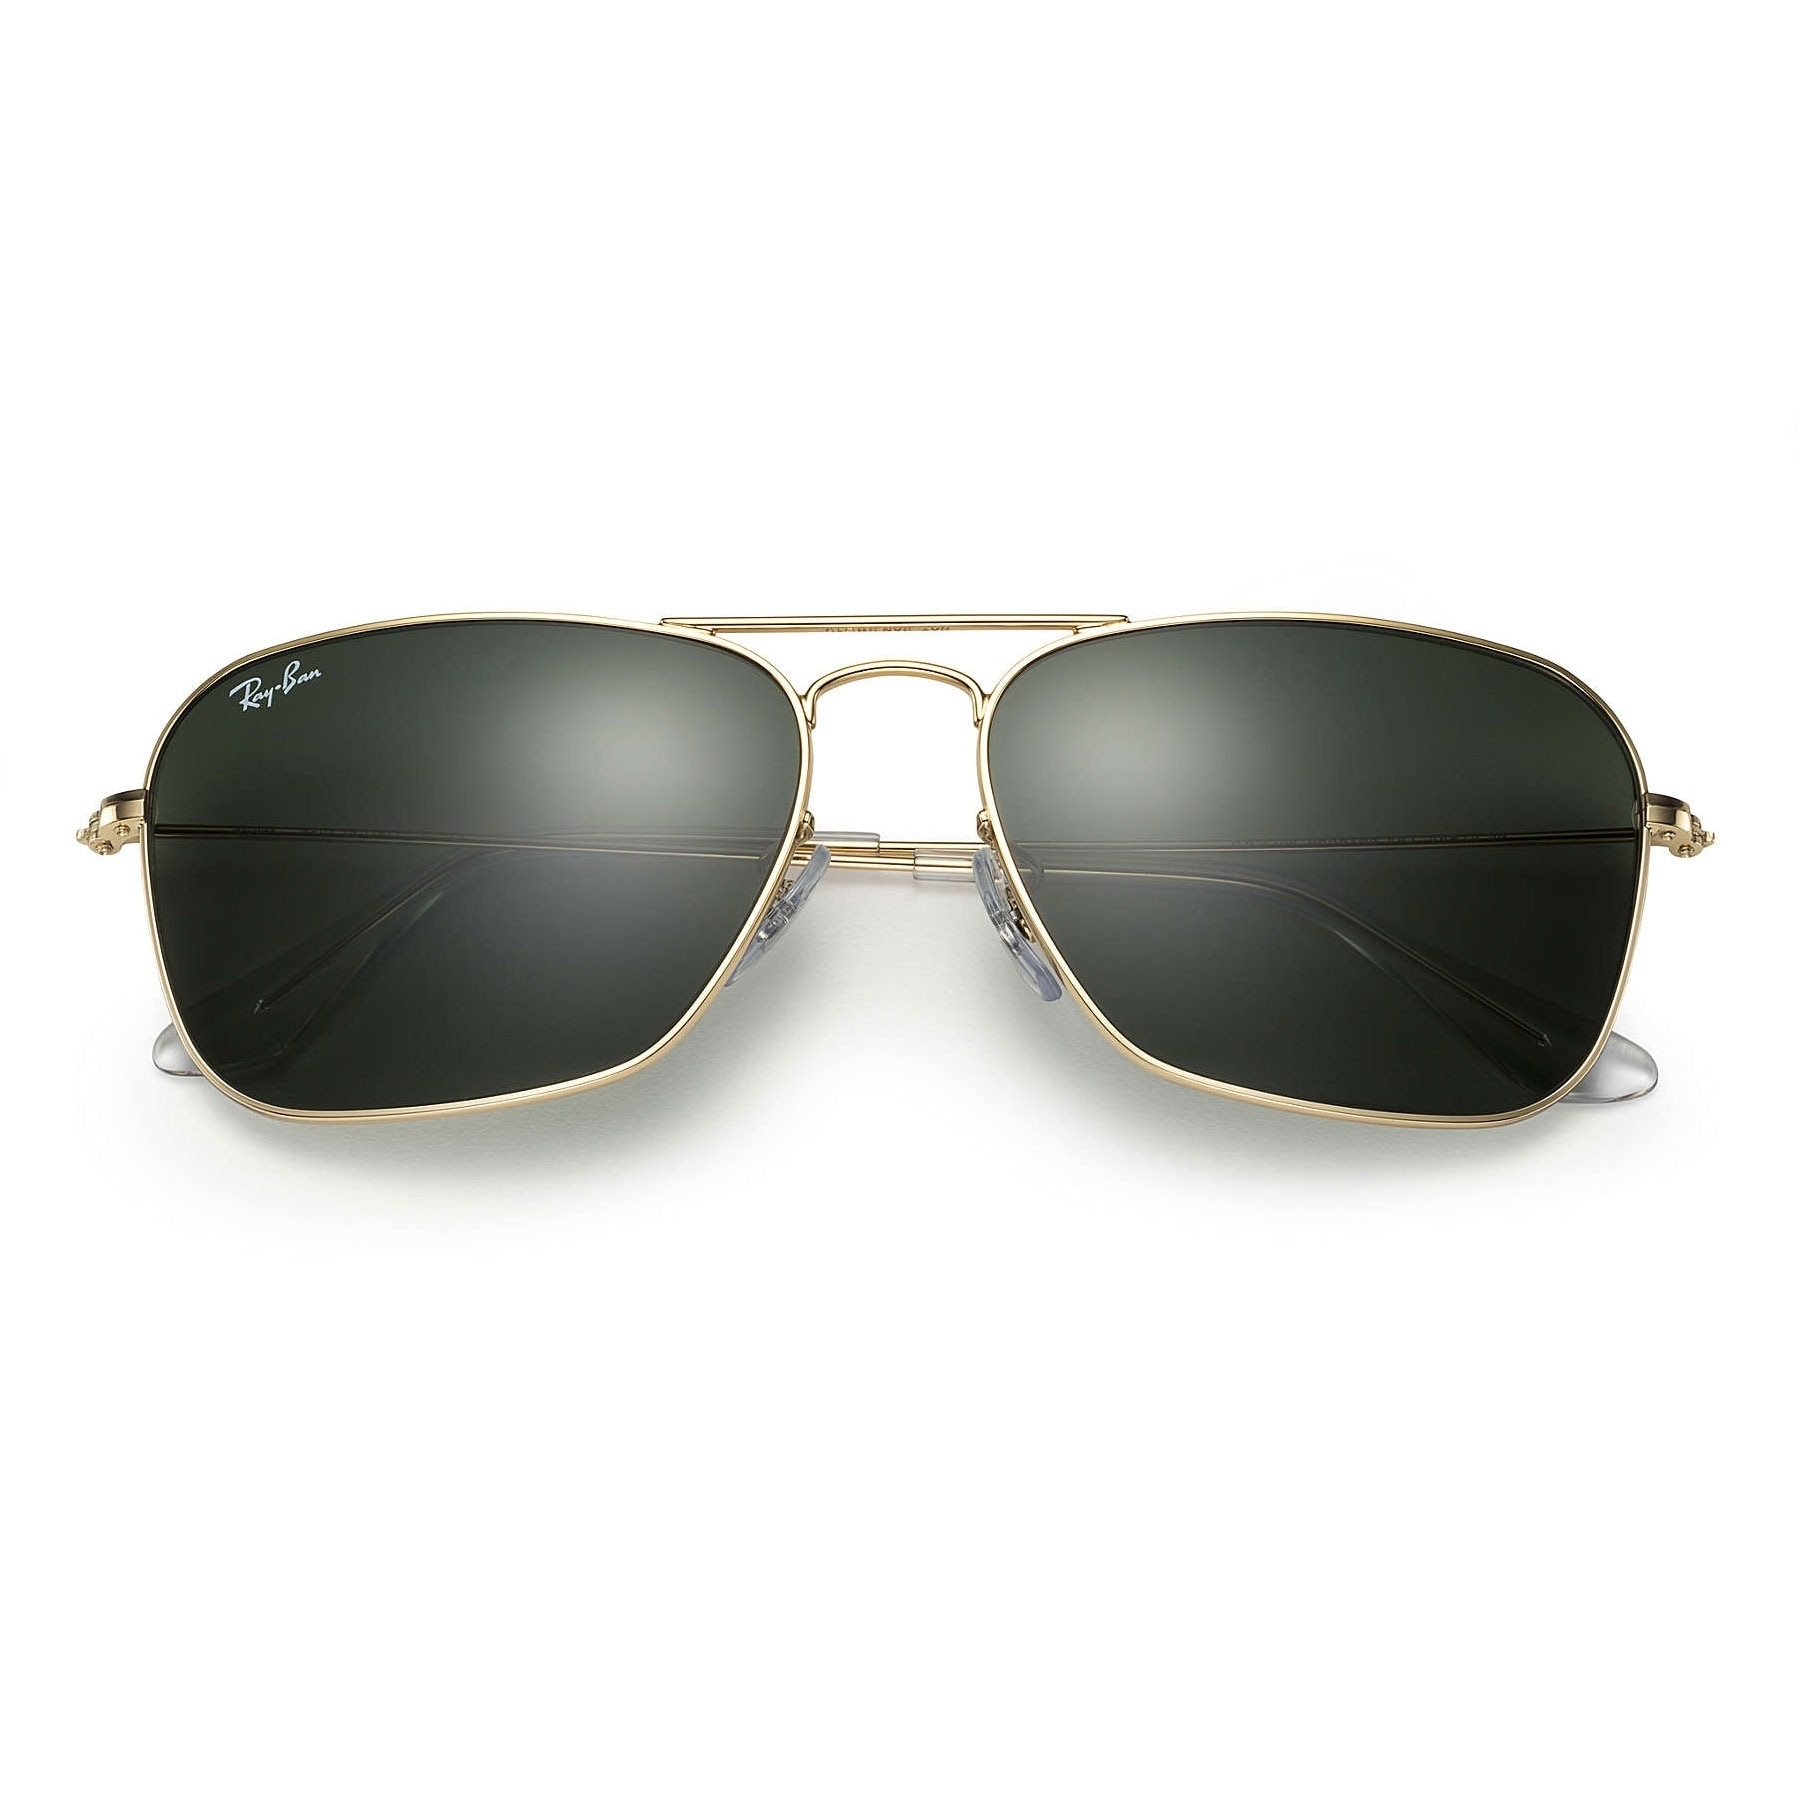 ea85d69f906 Shop Ray-Ban Caravan RB3136 Unisex Gold Frame Green Classic Lens Sunglasses  - Gold Green - Free Shipping Today - Overstock.com - 6385607